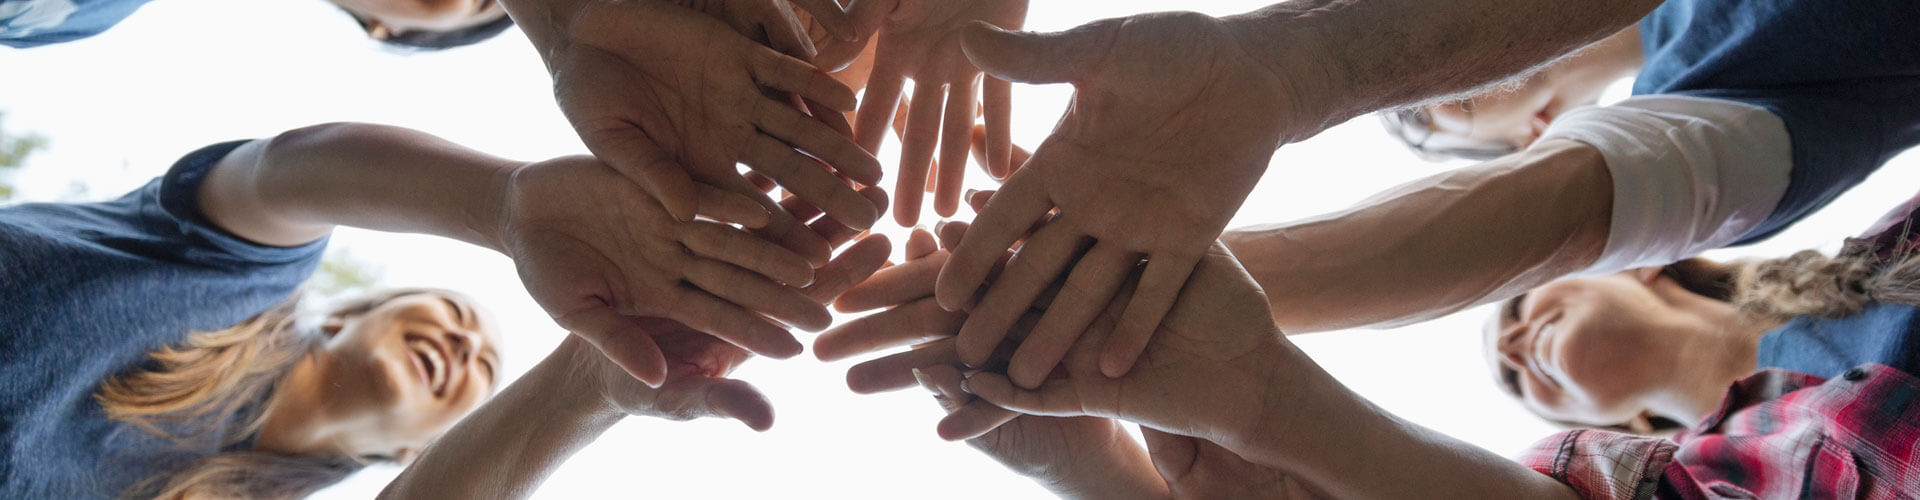 group-of-volunteers-with-hands-together-in-circle